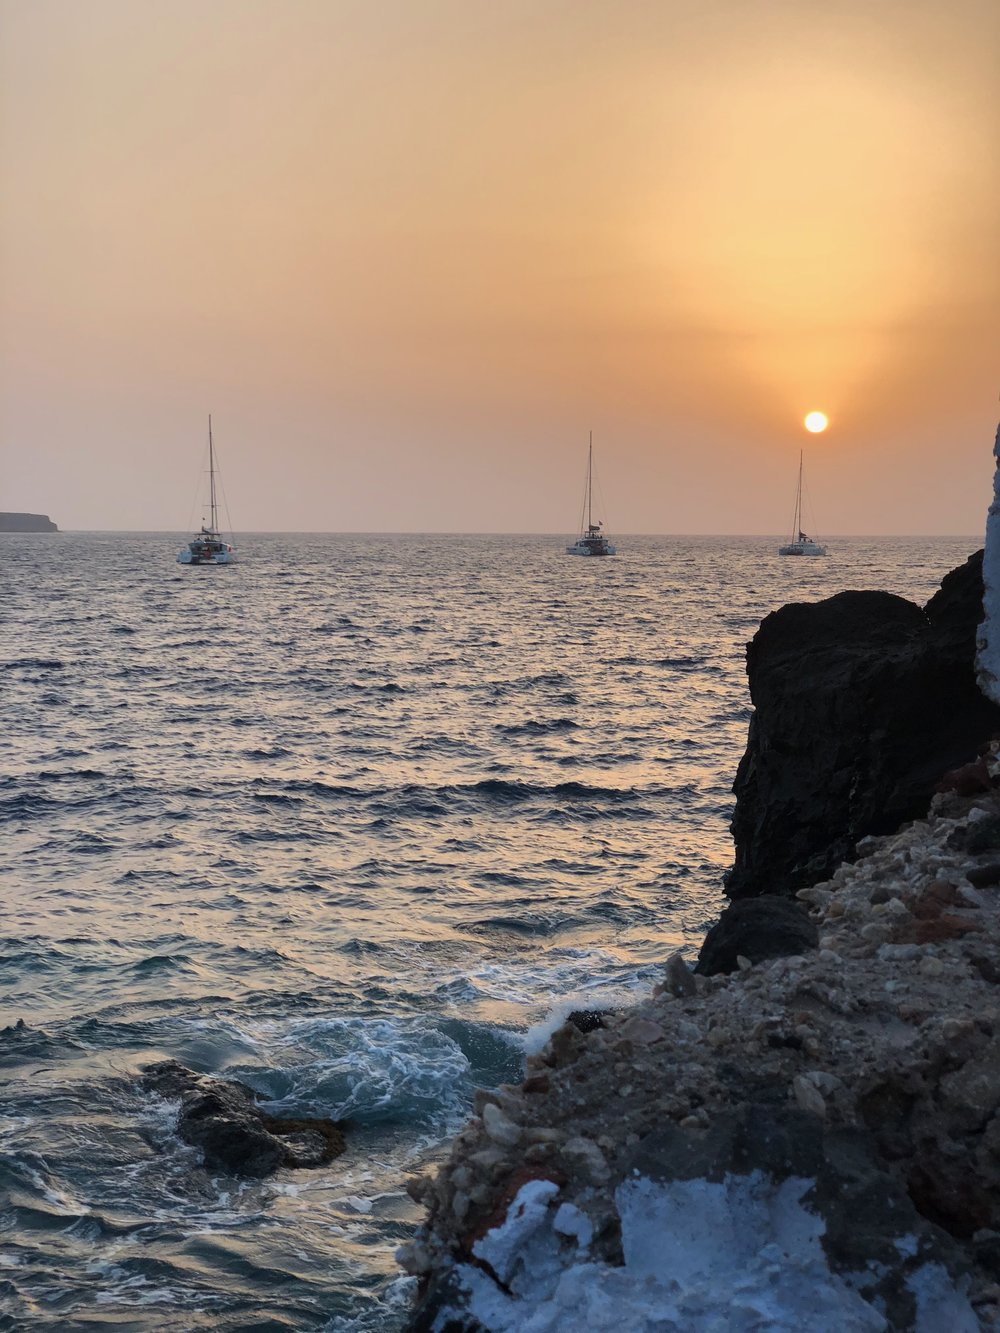 Sunset view from Amoudi Bay